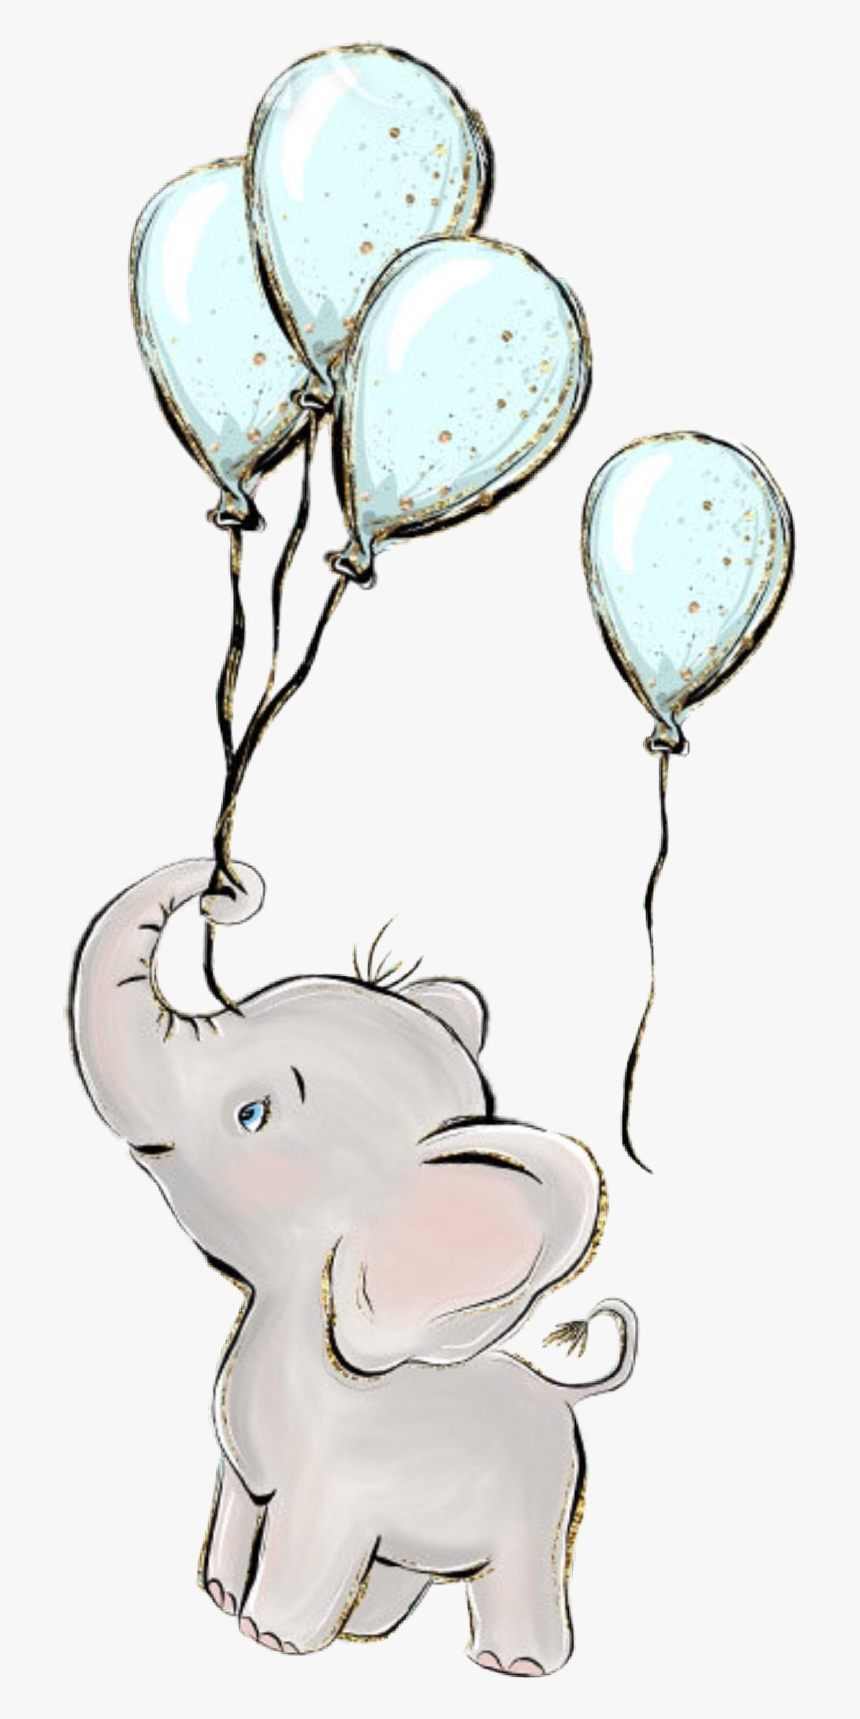 Watercolor Elephant Balloons Baby Boy Babyanimals Elephant With Balloons Clipart Hd Png Downl In 2020 Baby Elephant Drawing Elephant Clip Art Elephant Drawing Polish your personal project or design with these elephants transparent png images, make it even more personalized and more attractive. pinterest